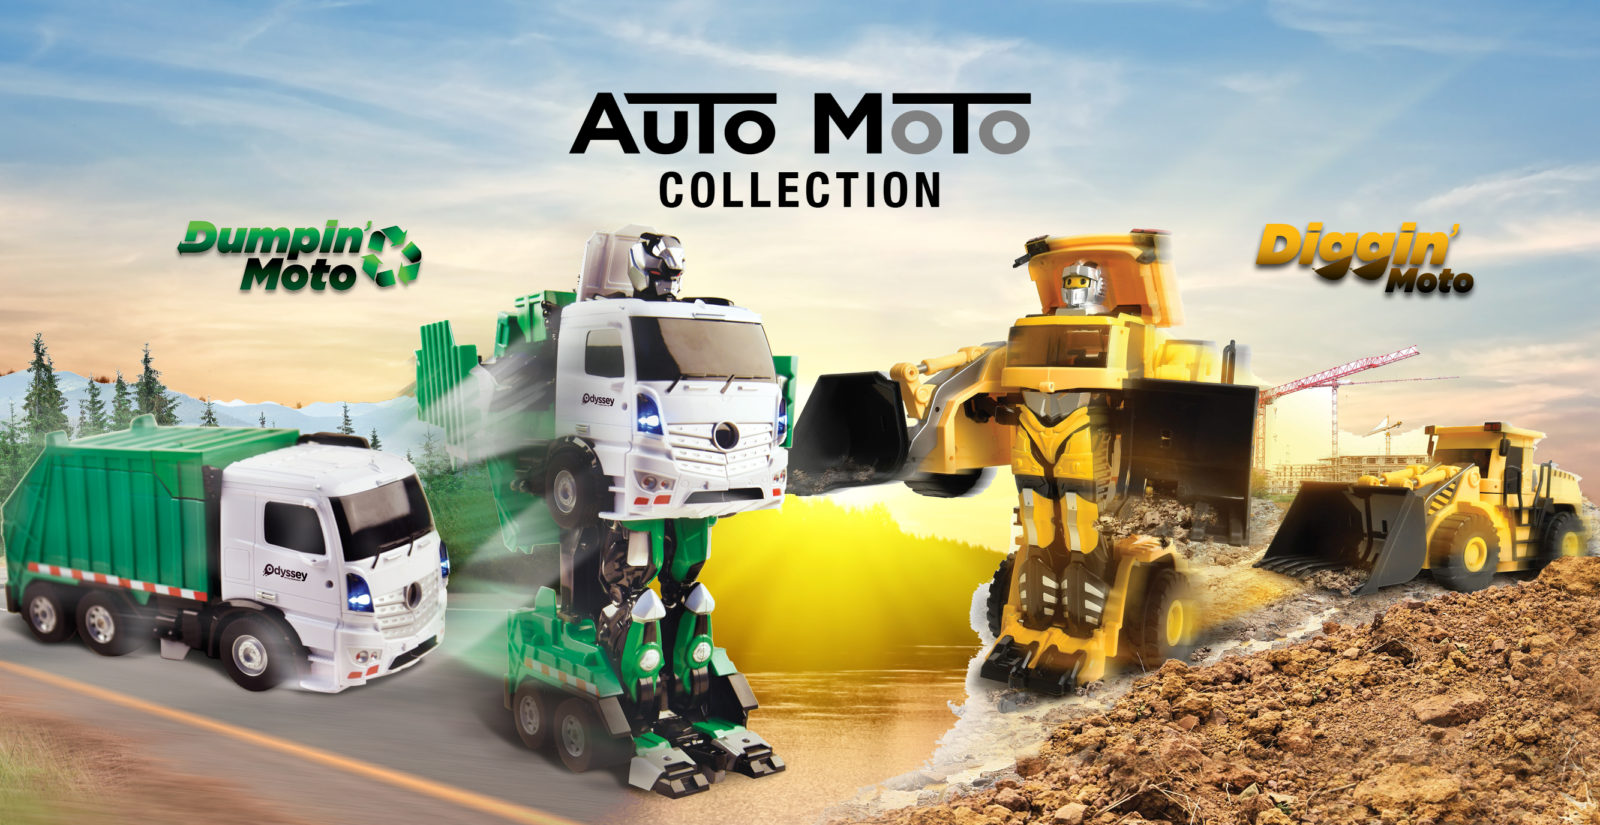 auto moto, tranforming trucks, transforming cars